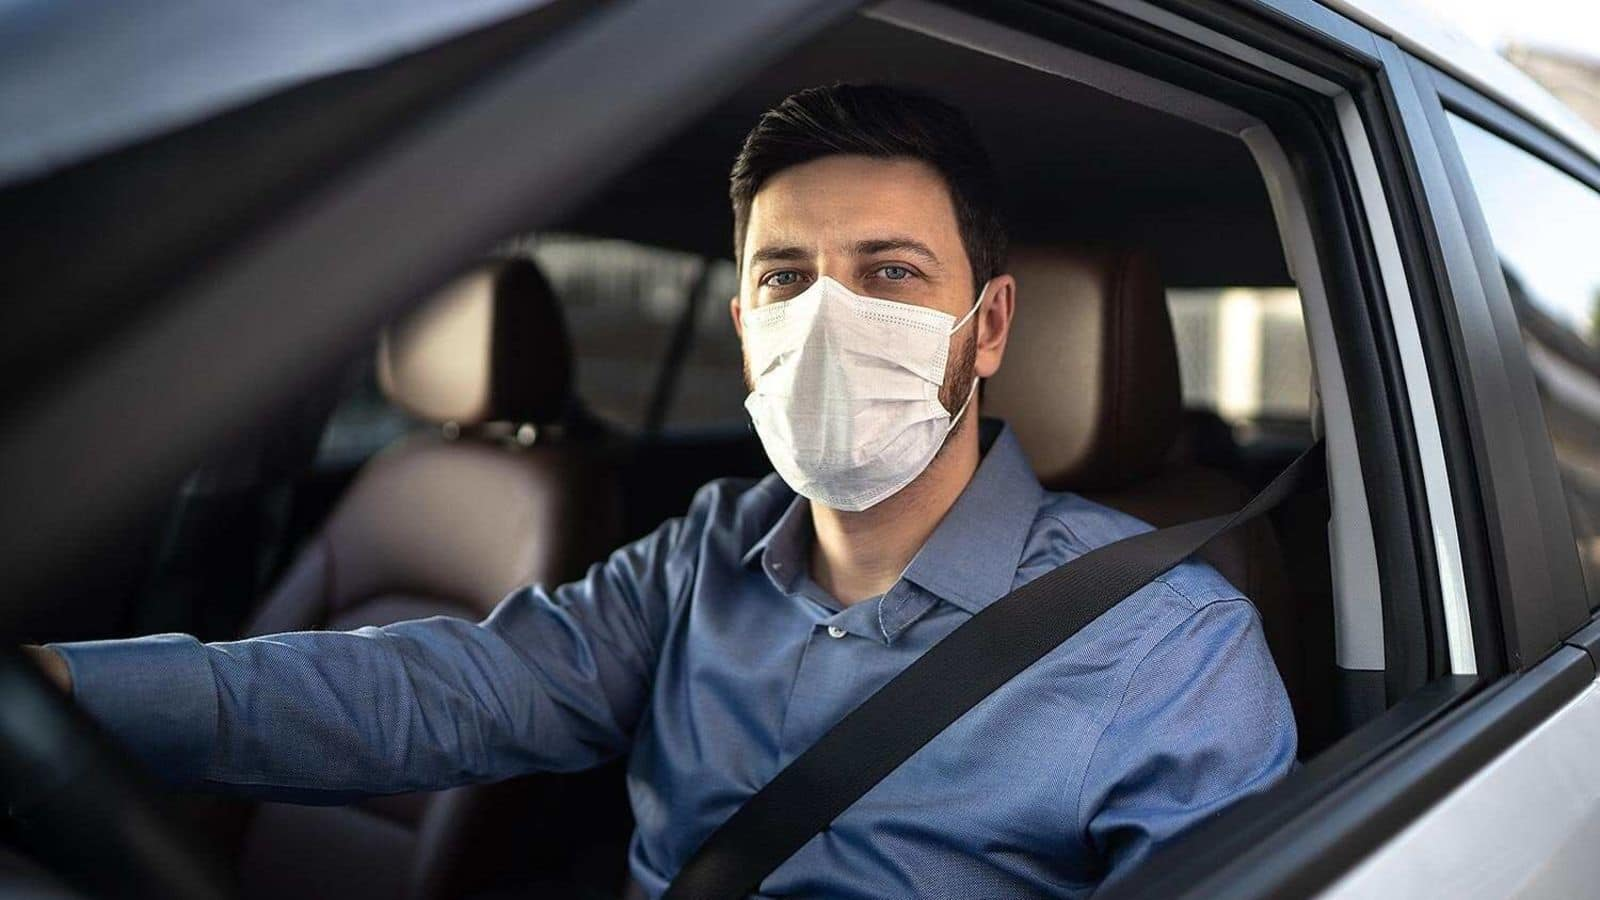 Coronavirus Delhi Updates: Delhi High Court on Wednesday made wearing of mask mandatory even if a person is driving alone.